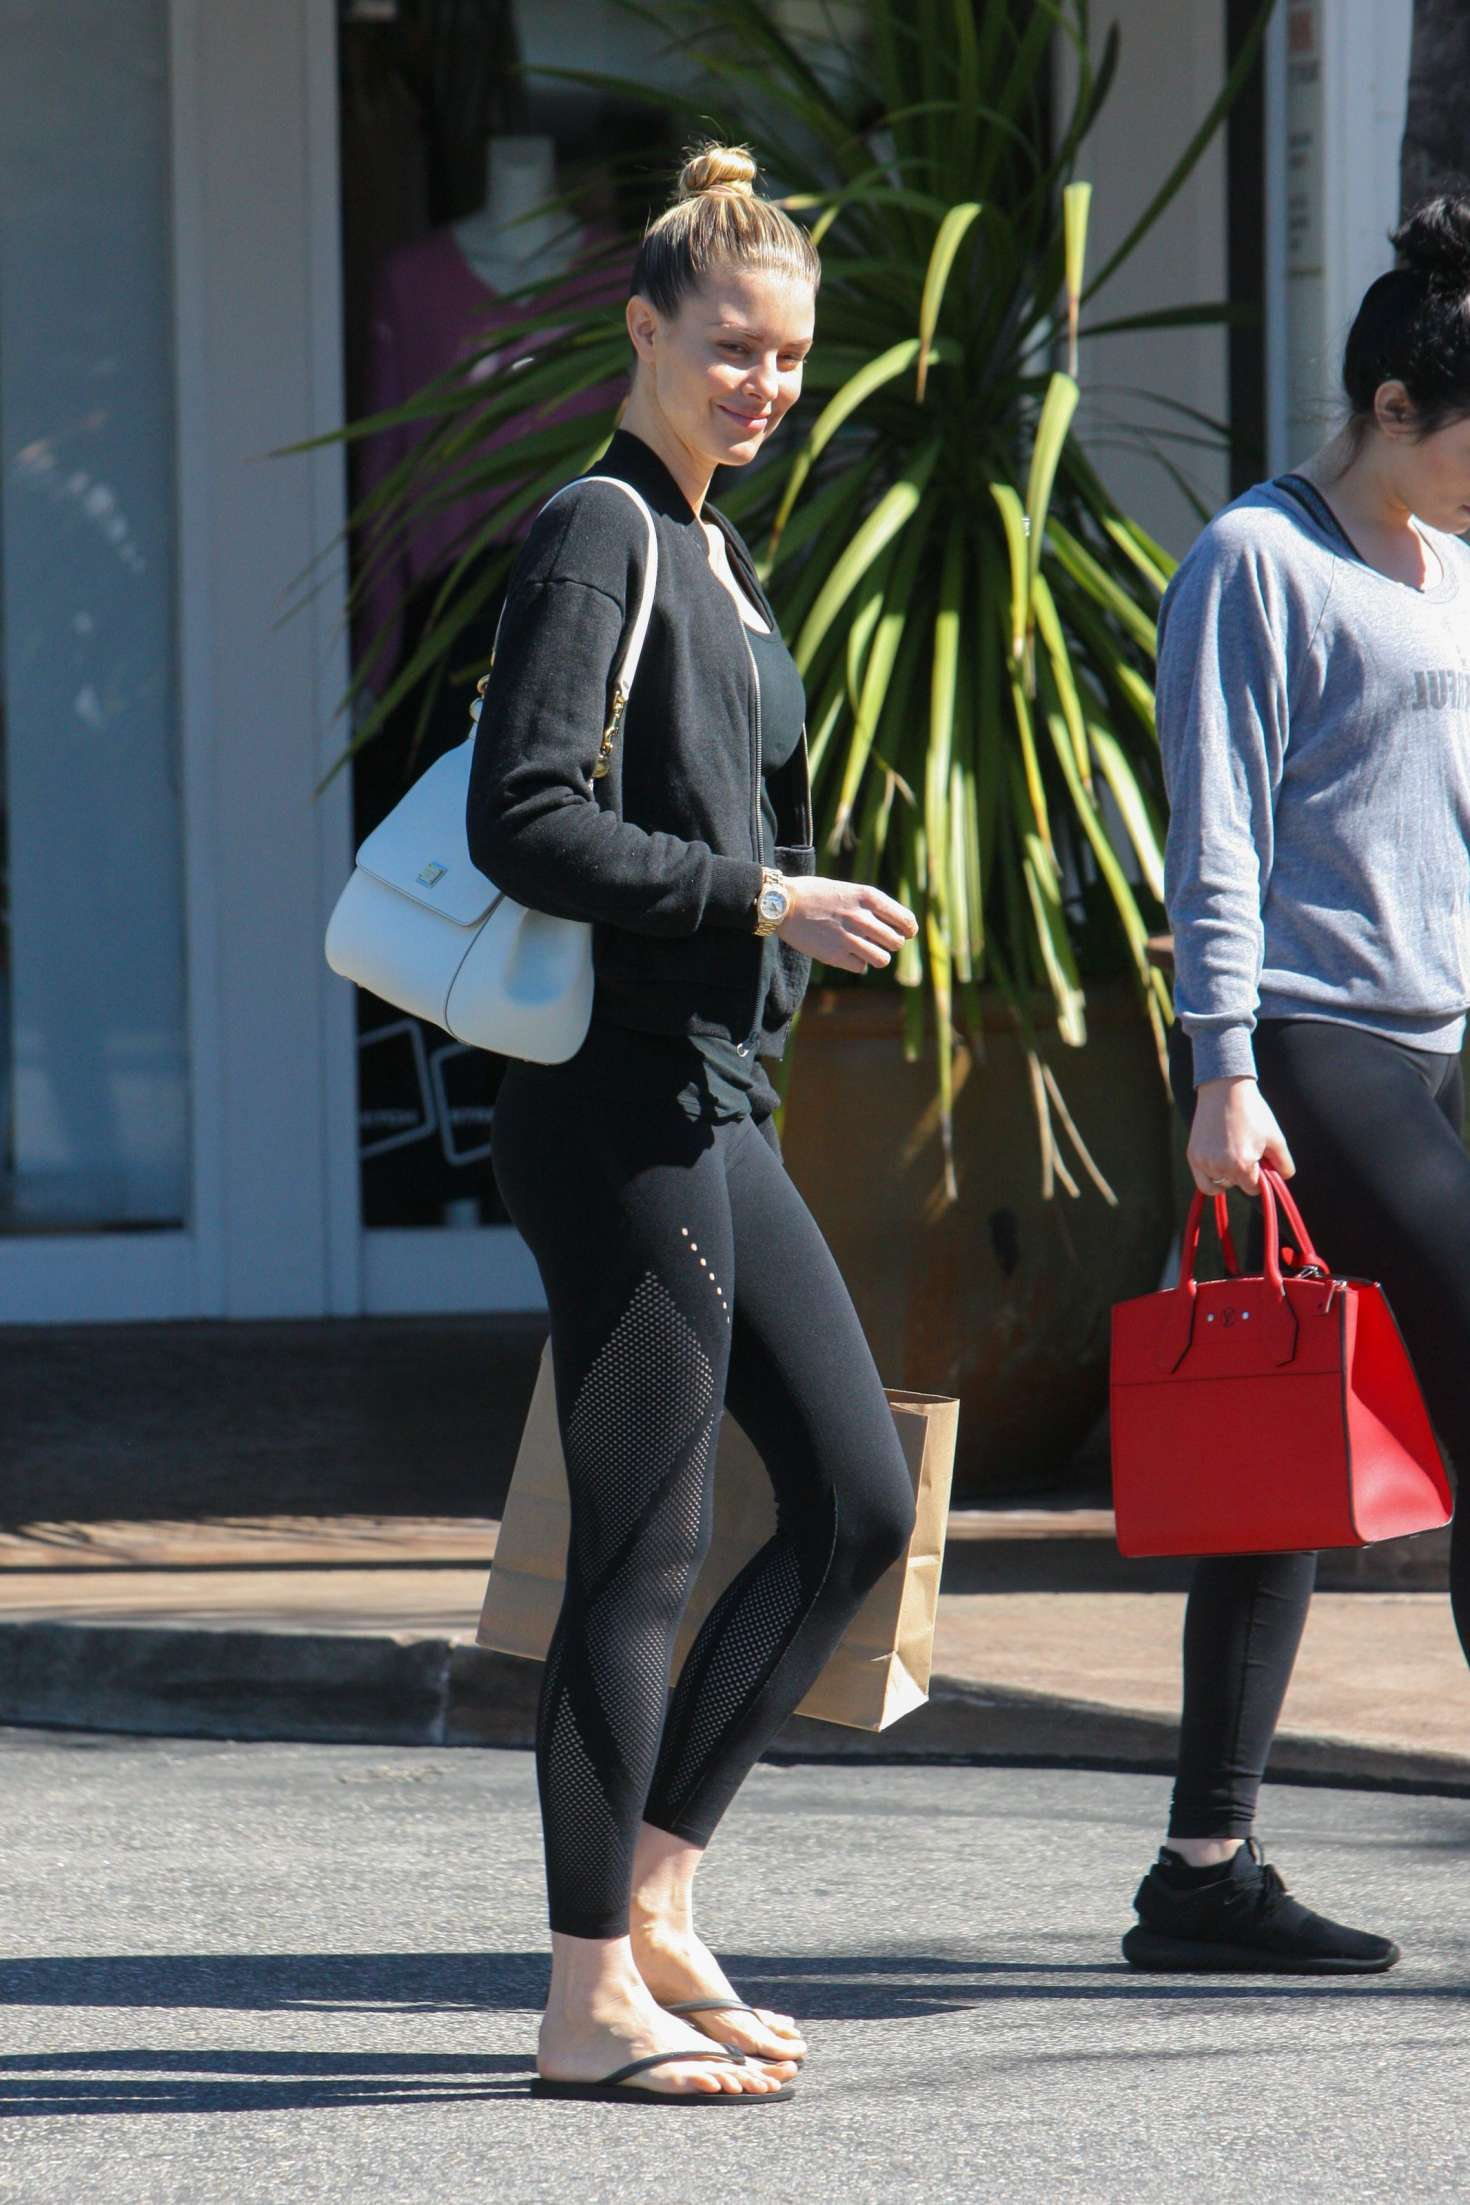 Watch Paige butcher in spandex beverly hills video